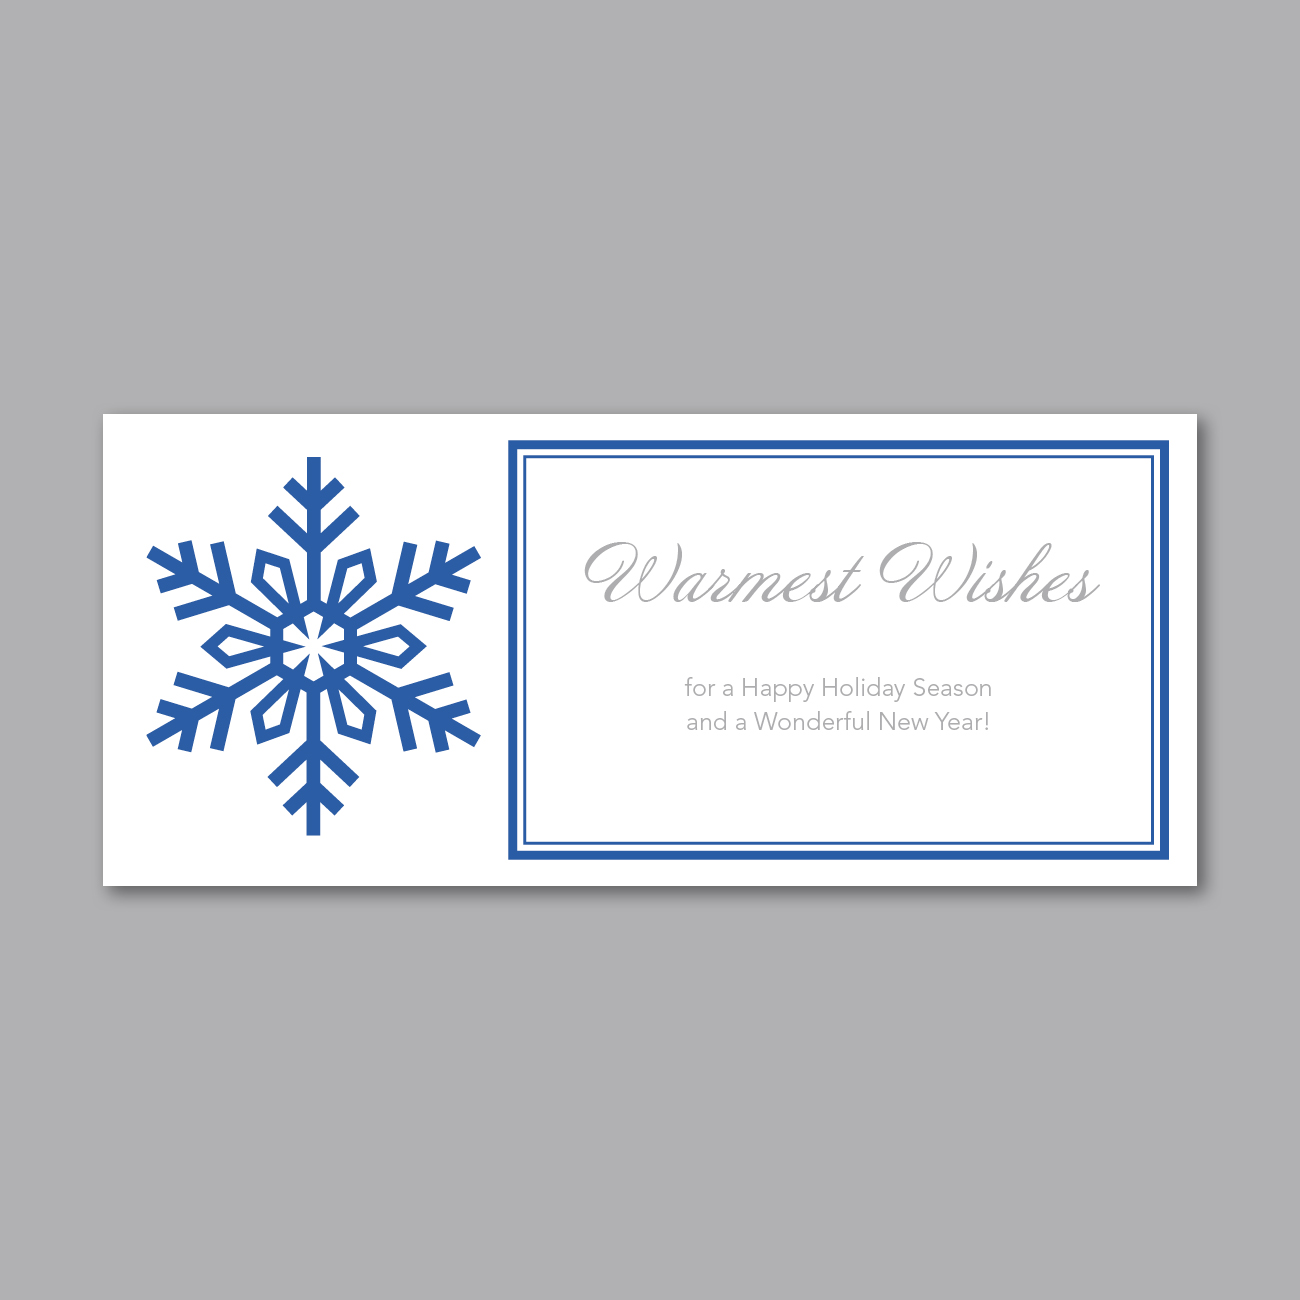 Holiday Greeting Insert - Snowflake Wishes